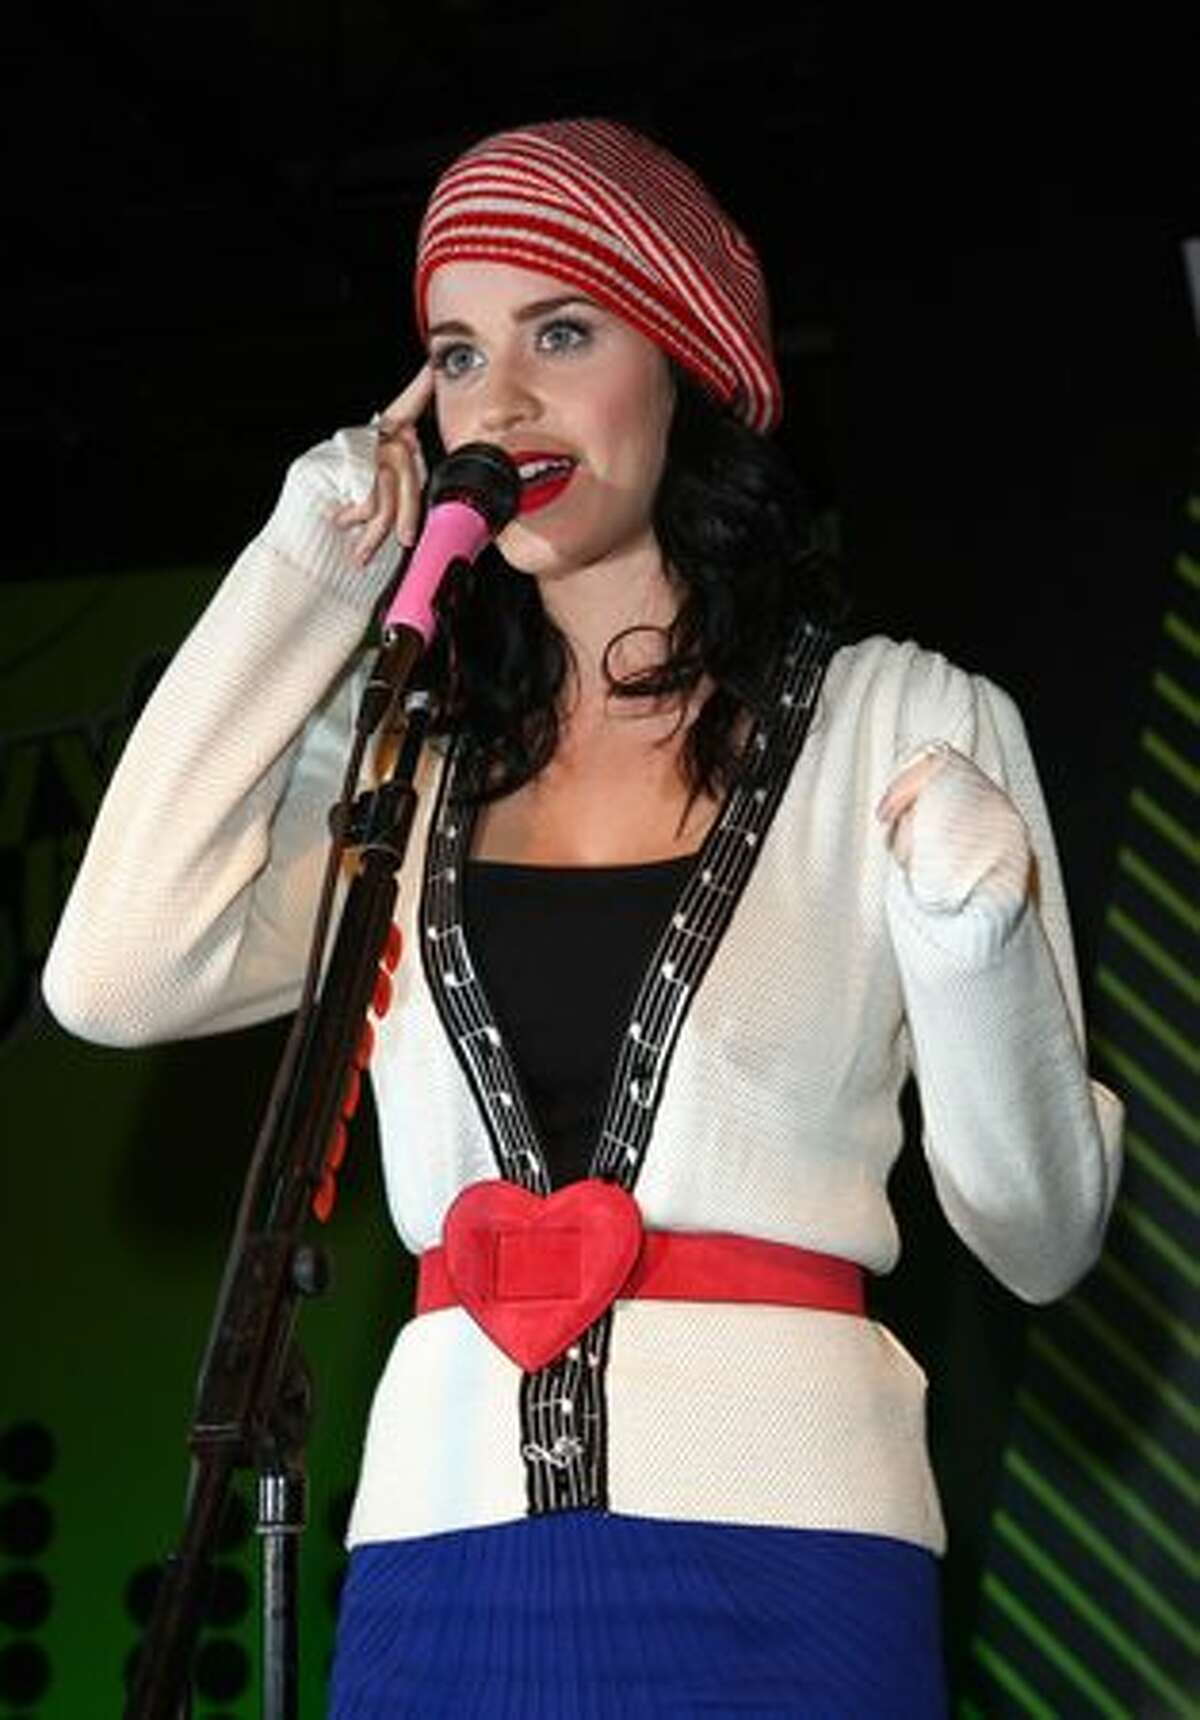 Katy Perry performs at Zavvi in London on Nov. 12, 2008.